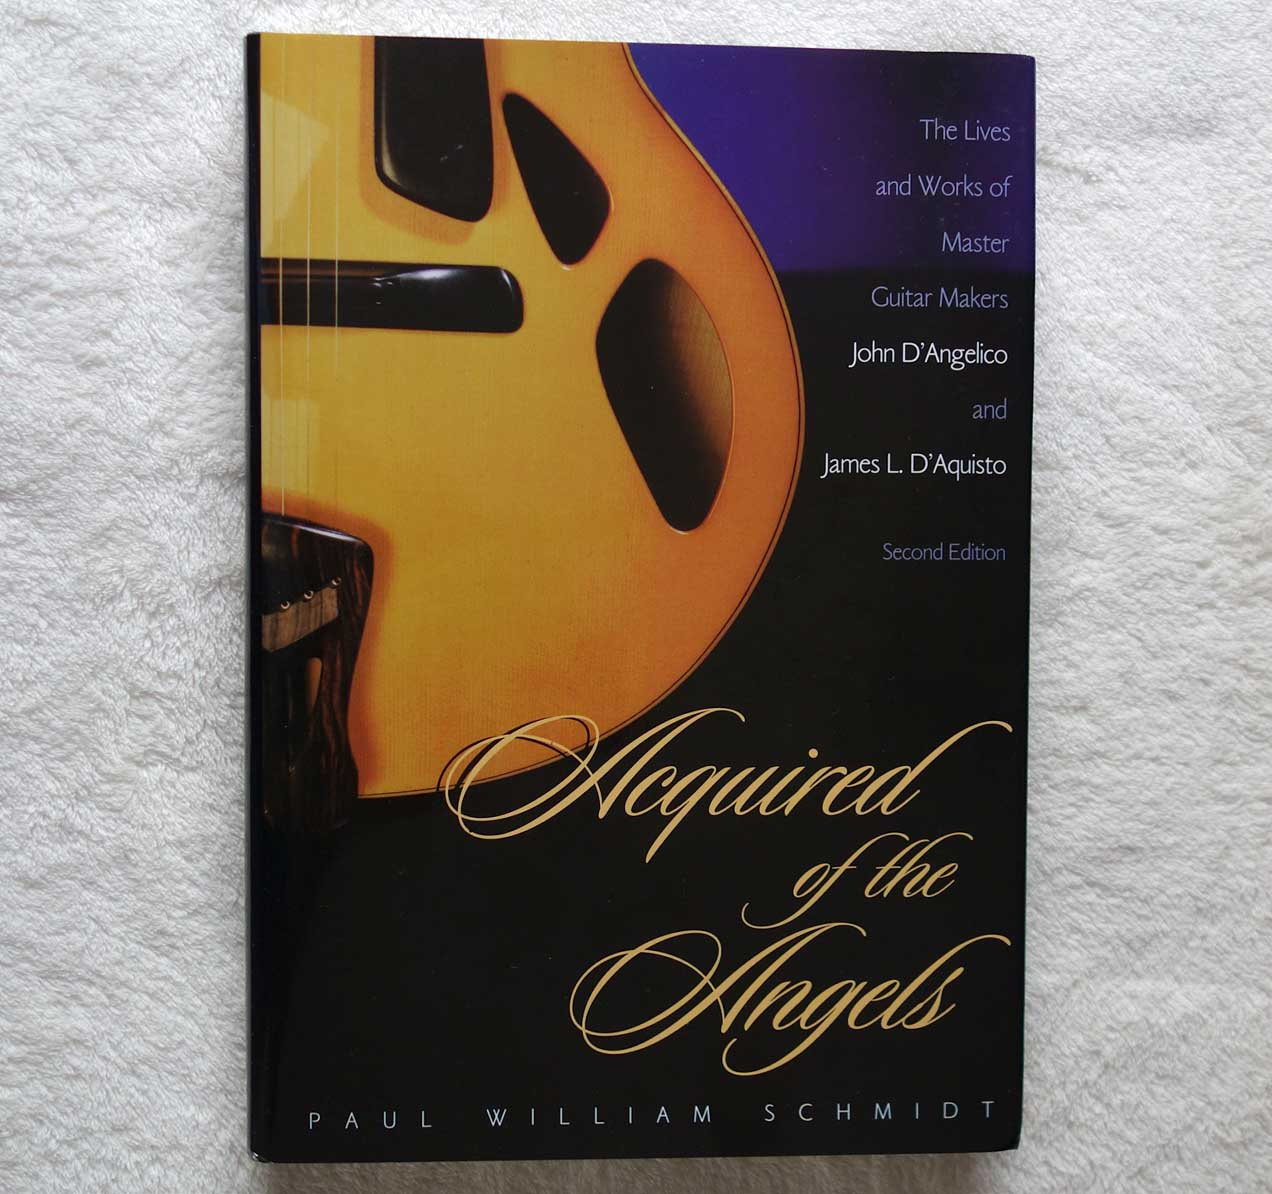 Acquired of the Angels: The Lives and Works of D'Angelico and D'Aquisto Signed by the Author, Paul Schmidt, 1998 Second Edition